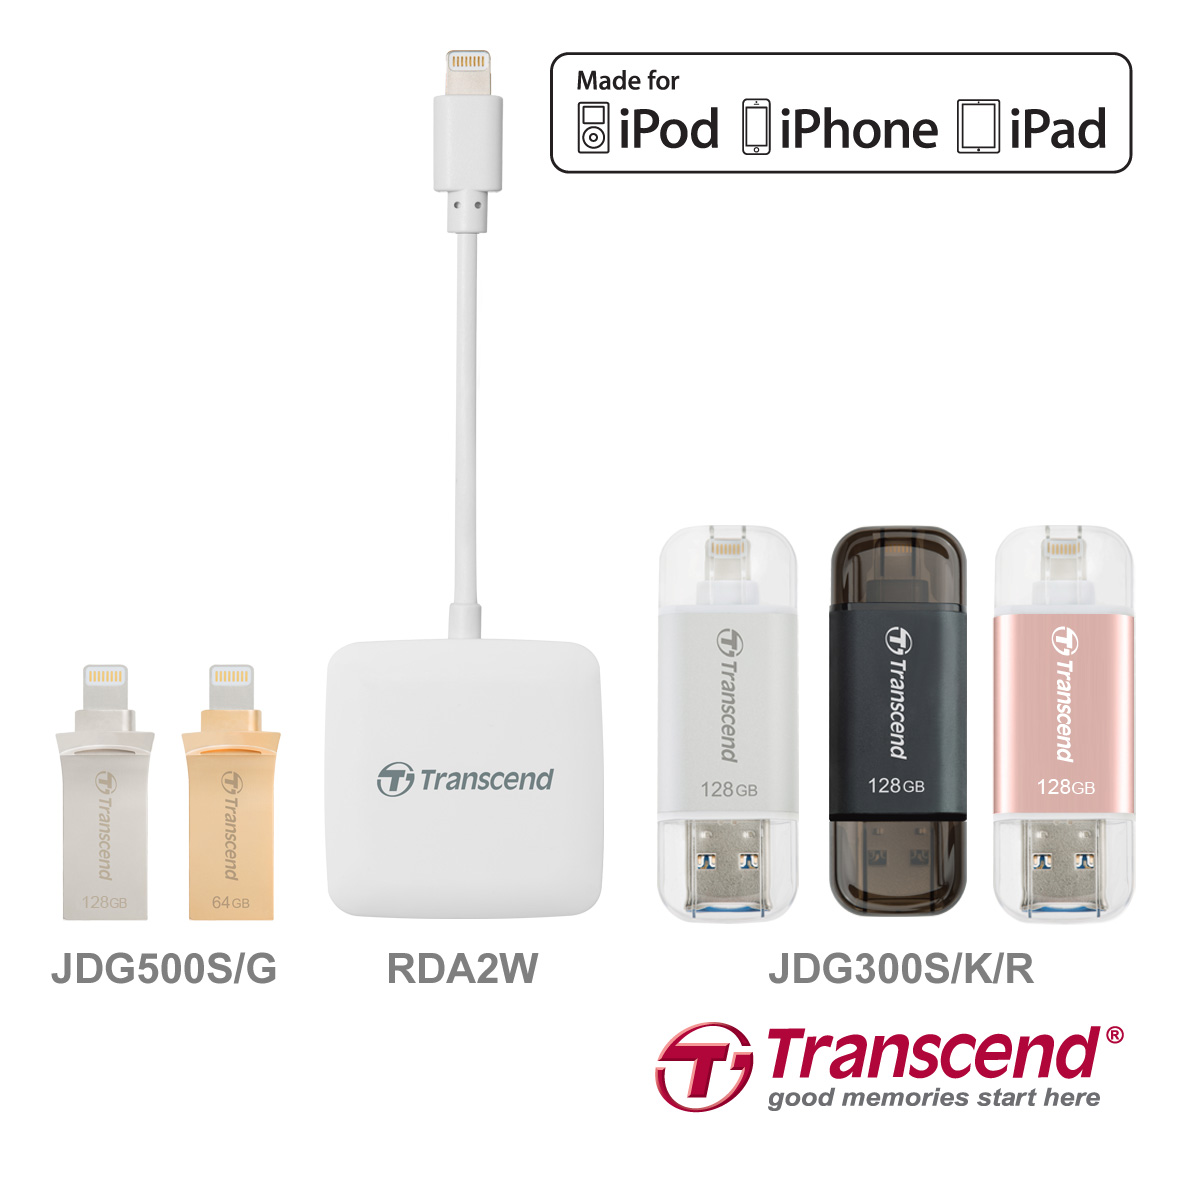 Transcend Complete Lightning Product Line-up for the Latest iOS Devices